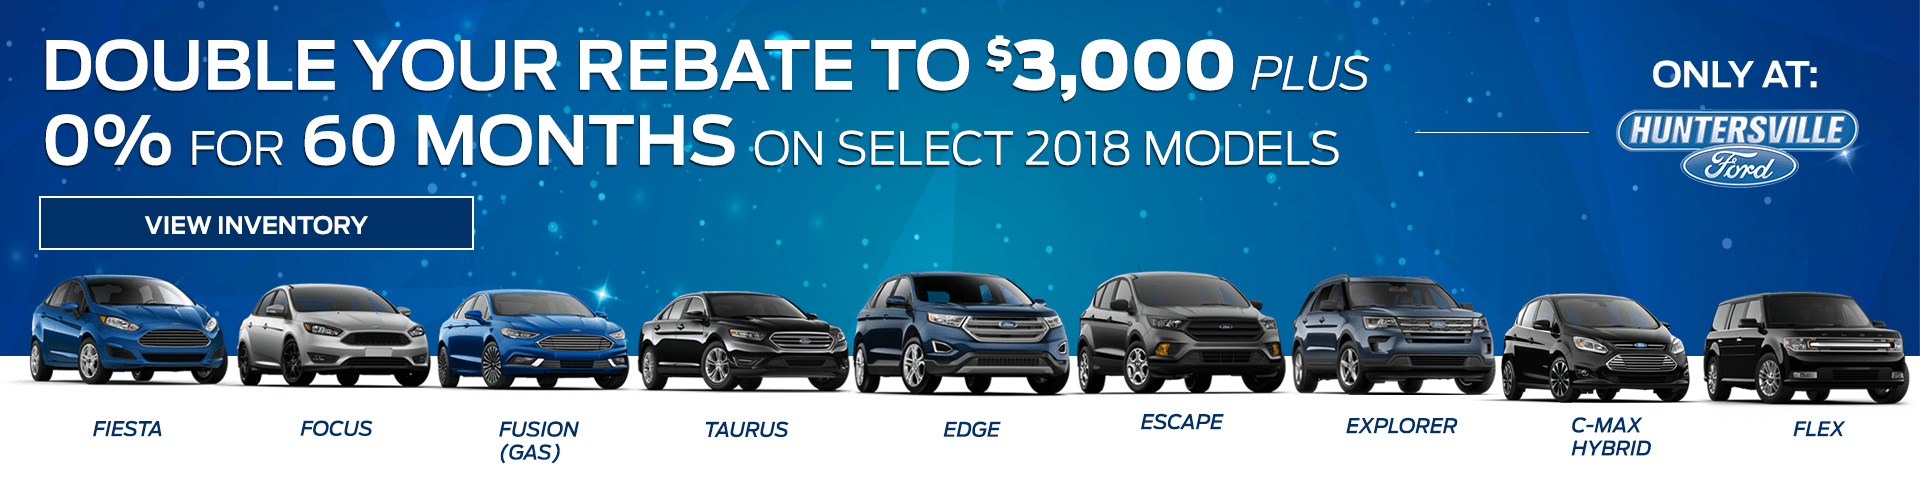 0% for 60 Months Plus $3,000